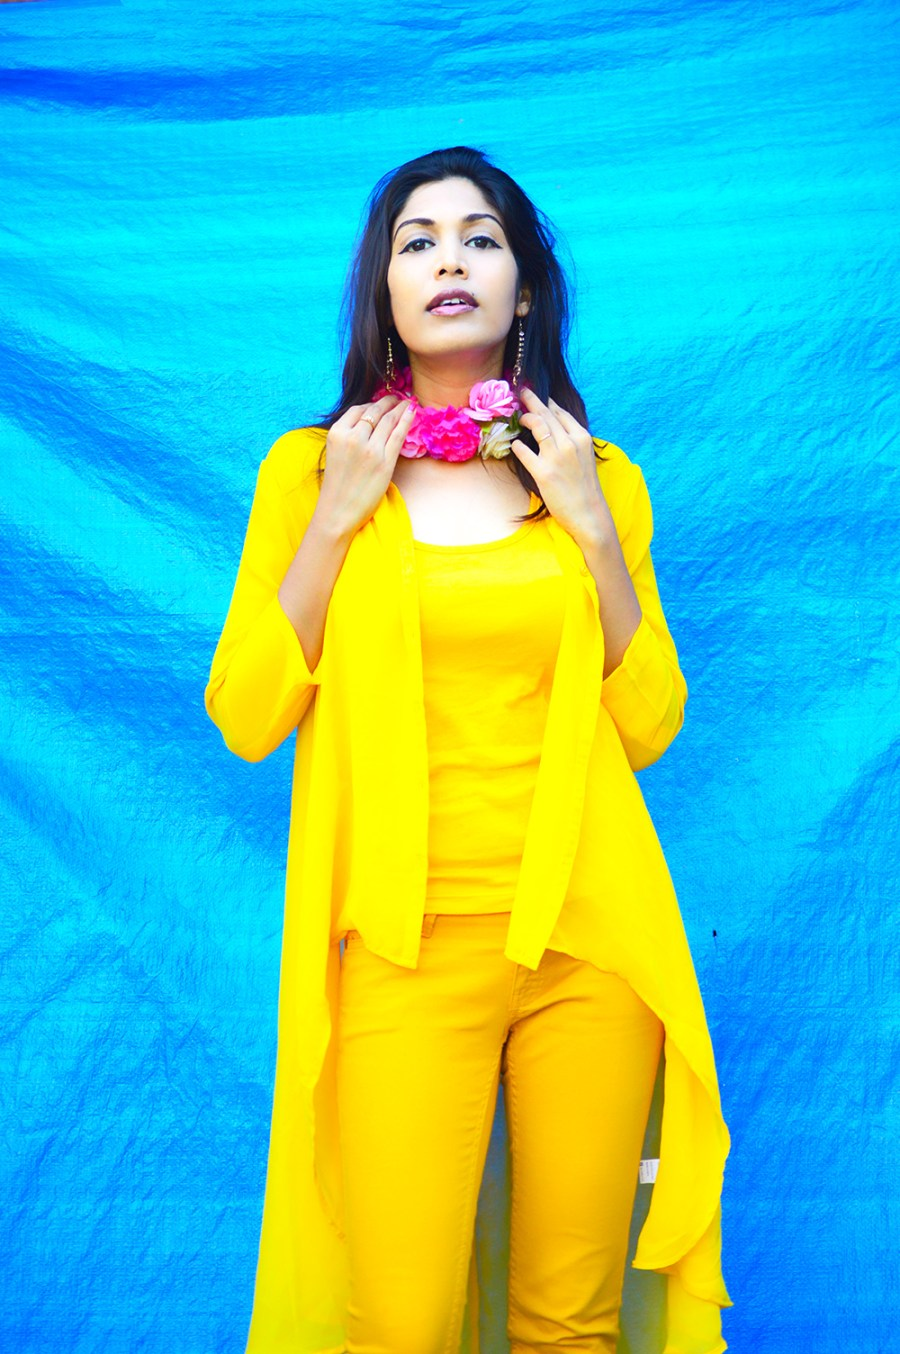 Fashion, Style, Street Style, Fashion Photography, Summer Fashion, Indian Fashion Blogger, Fashion Blogger, Yellow Shrug, Yellow Outfit, Summer Colours, Style Over Coffee, Beauty-5